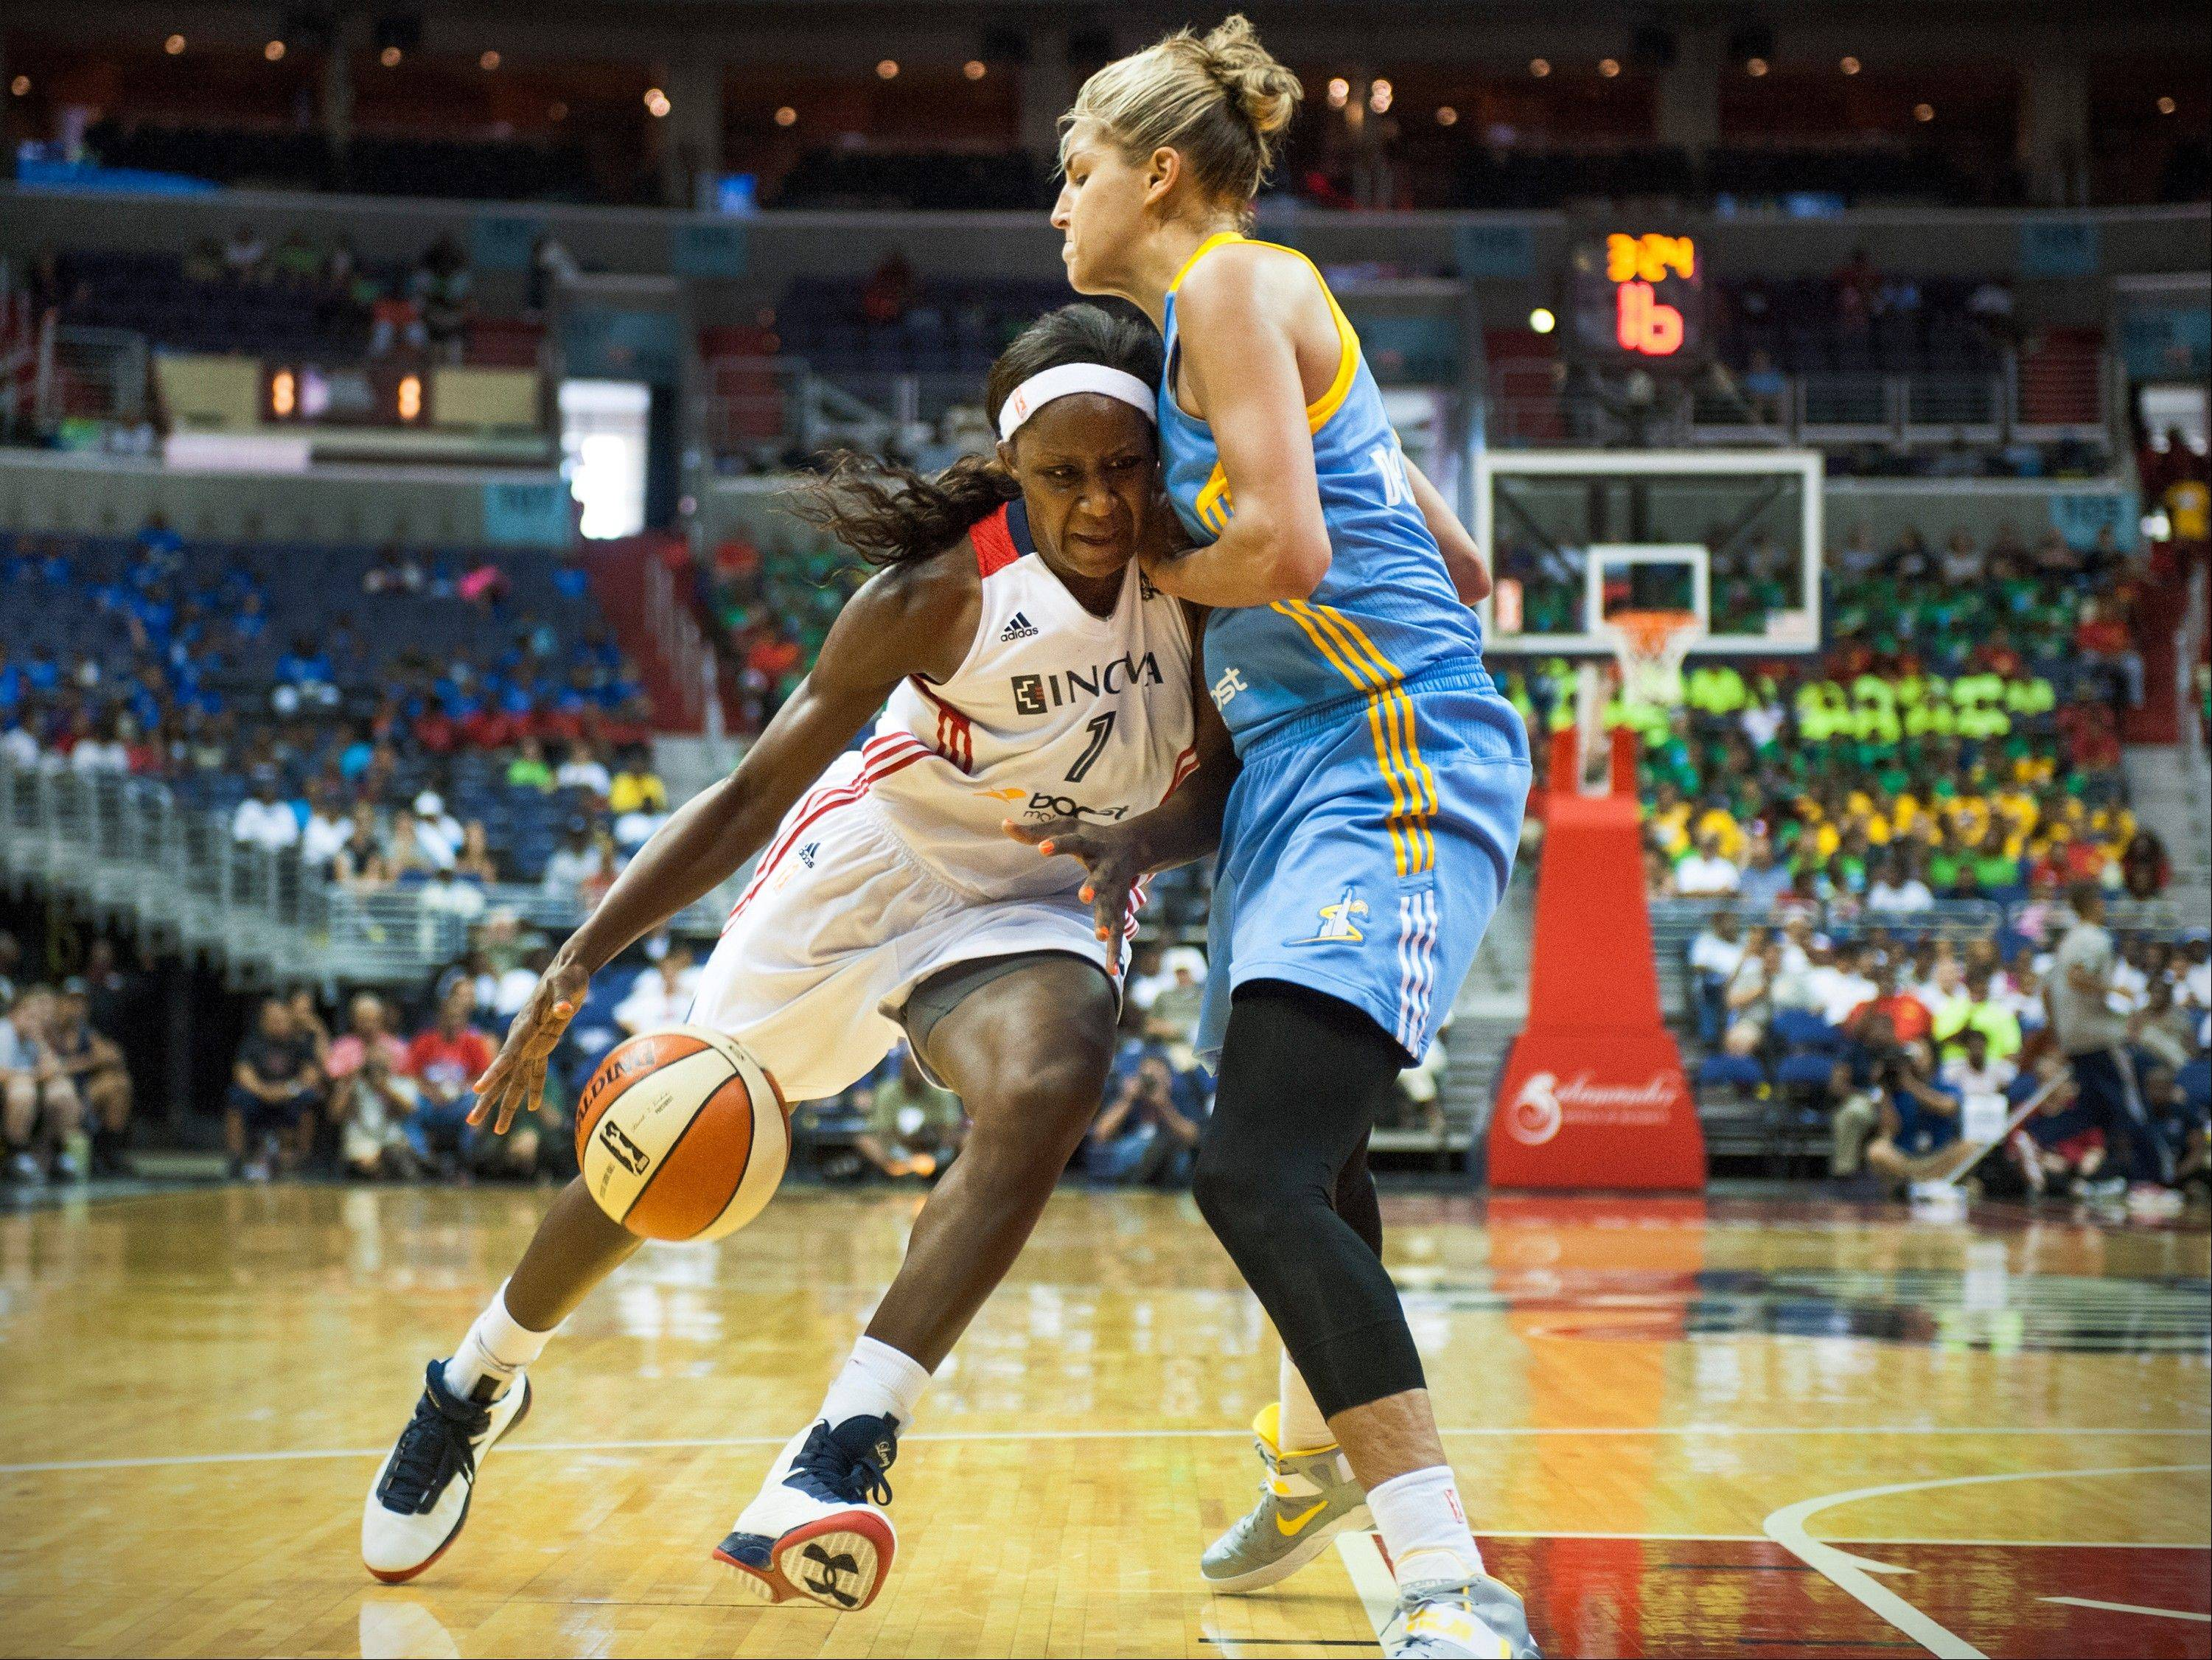 Washington Mystics' Crystal Langhorne (1) drives against Chicago Sky's Elena Delle Donne (11) during the second half of a WNBA basketball game at Verizon Center Wednesday, July 24, 2013 in Washington. The Mystics won 82-78. (AP Photo/The Washington Post, Katherine Frey) MANDATORY CREDIT; WASHINGTON TIMES OUT; NEW YORK TIMES OUT;THE WASHINGTON EXAMINER AND USA TODAY OUT; MAGS OUT; NO SALES